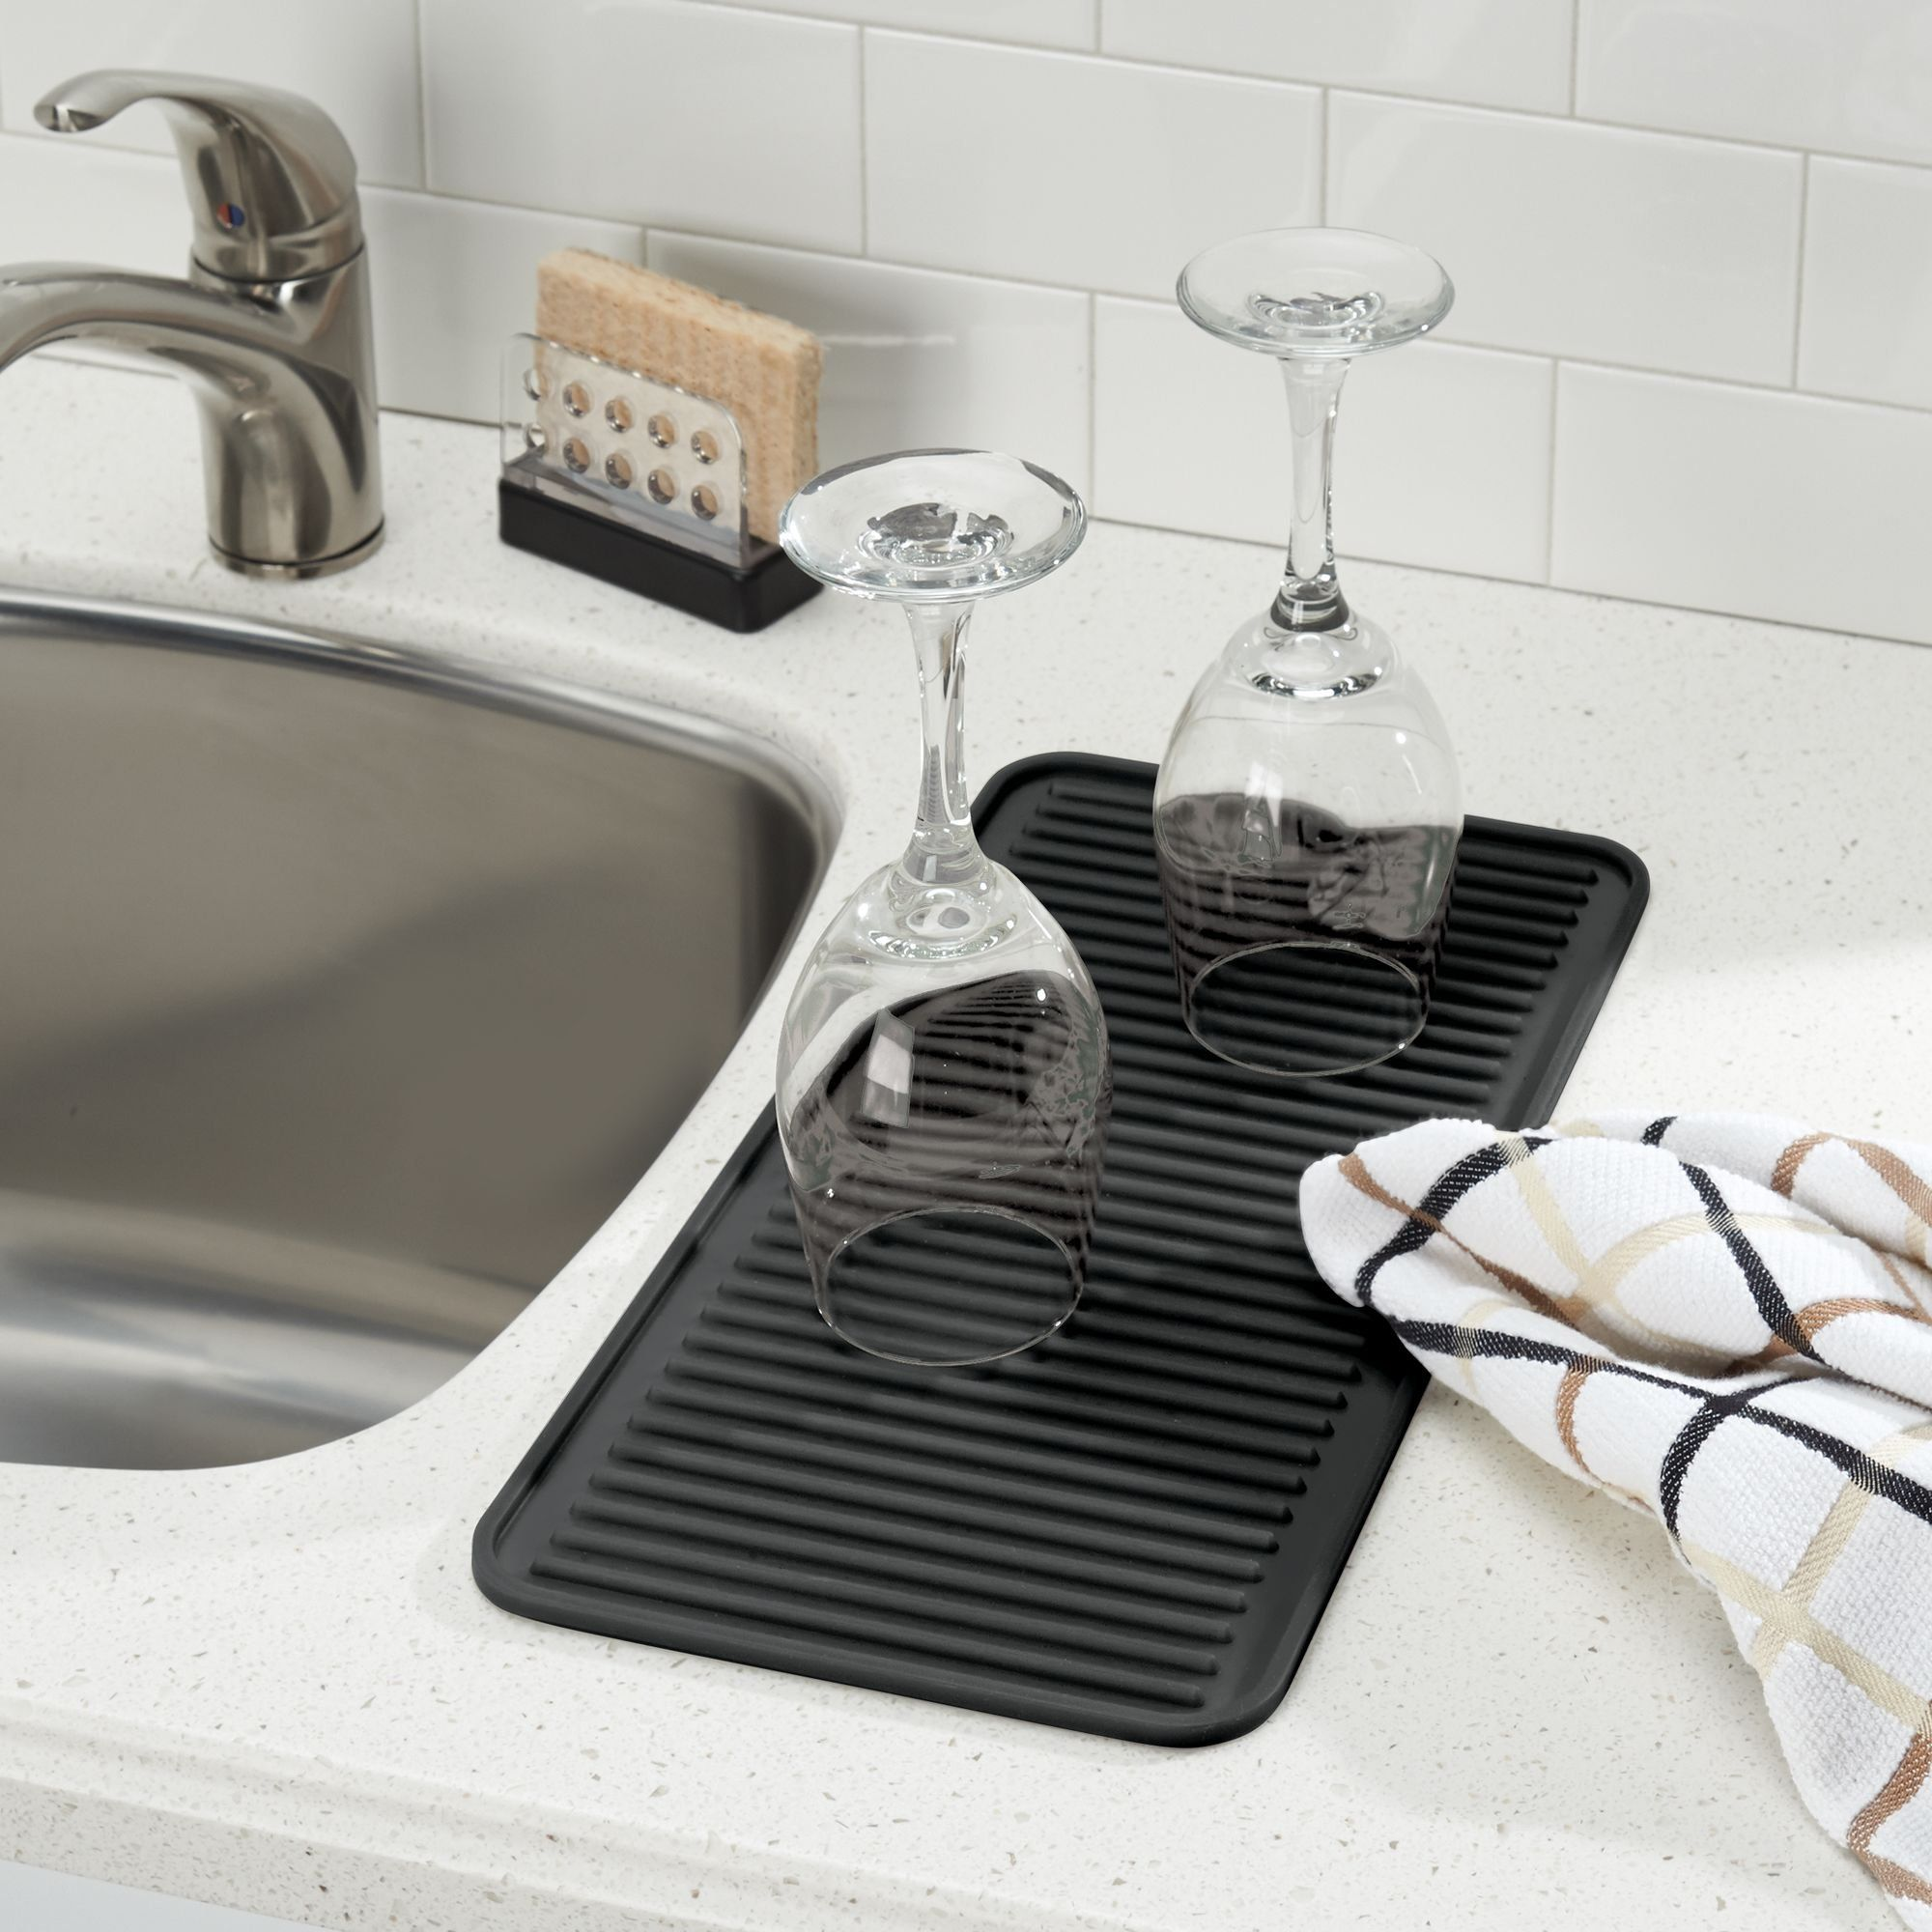 Mdesign Silicone Dish Drying Mat And Protector For Kitchen Countertops Sinks Ribbed Design Heat Resistant Dishwasher S Dish Rack Drying Sink Dish Rack Mdesign